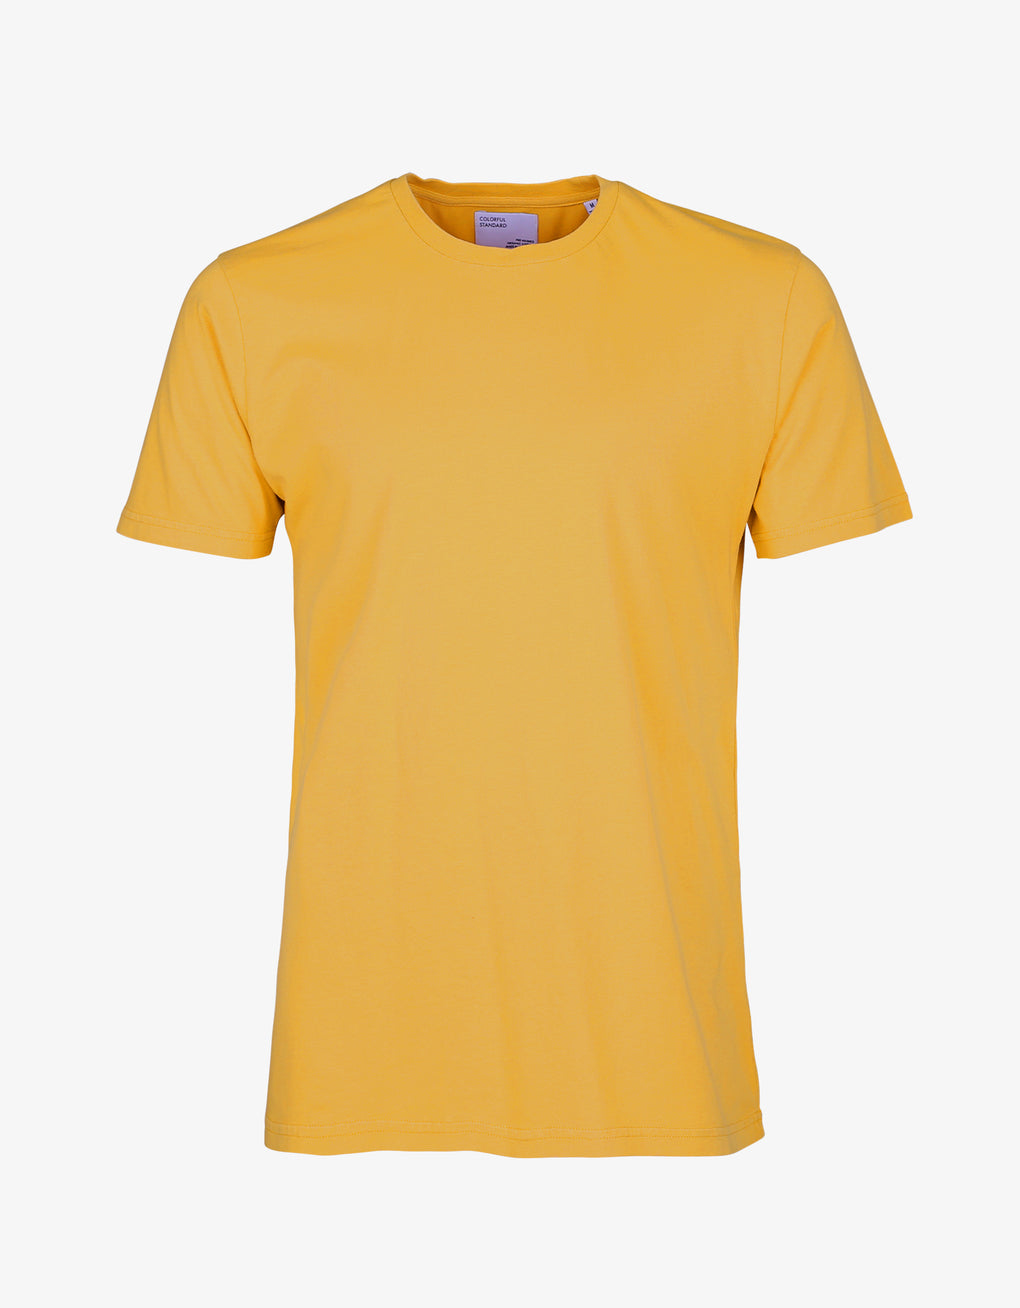 Colorful Standard Classic Organic Tee T-shirt Burned Yellow